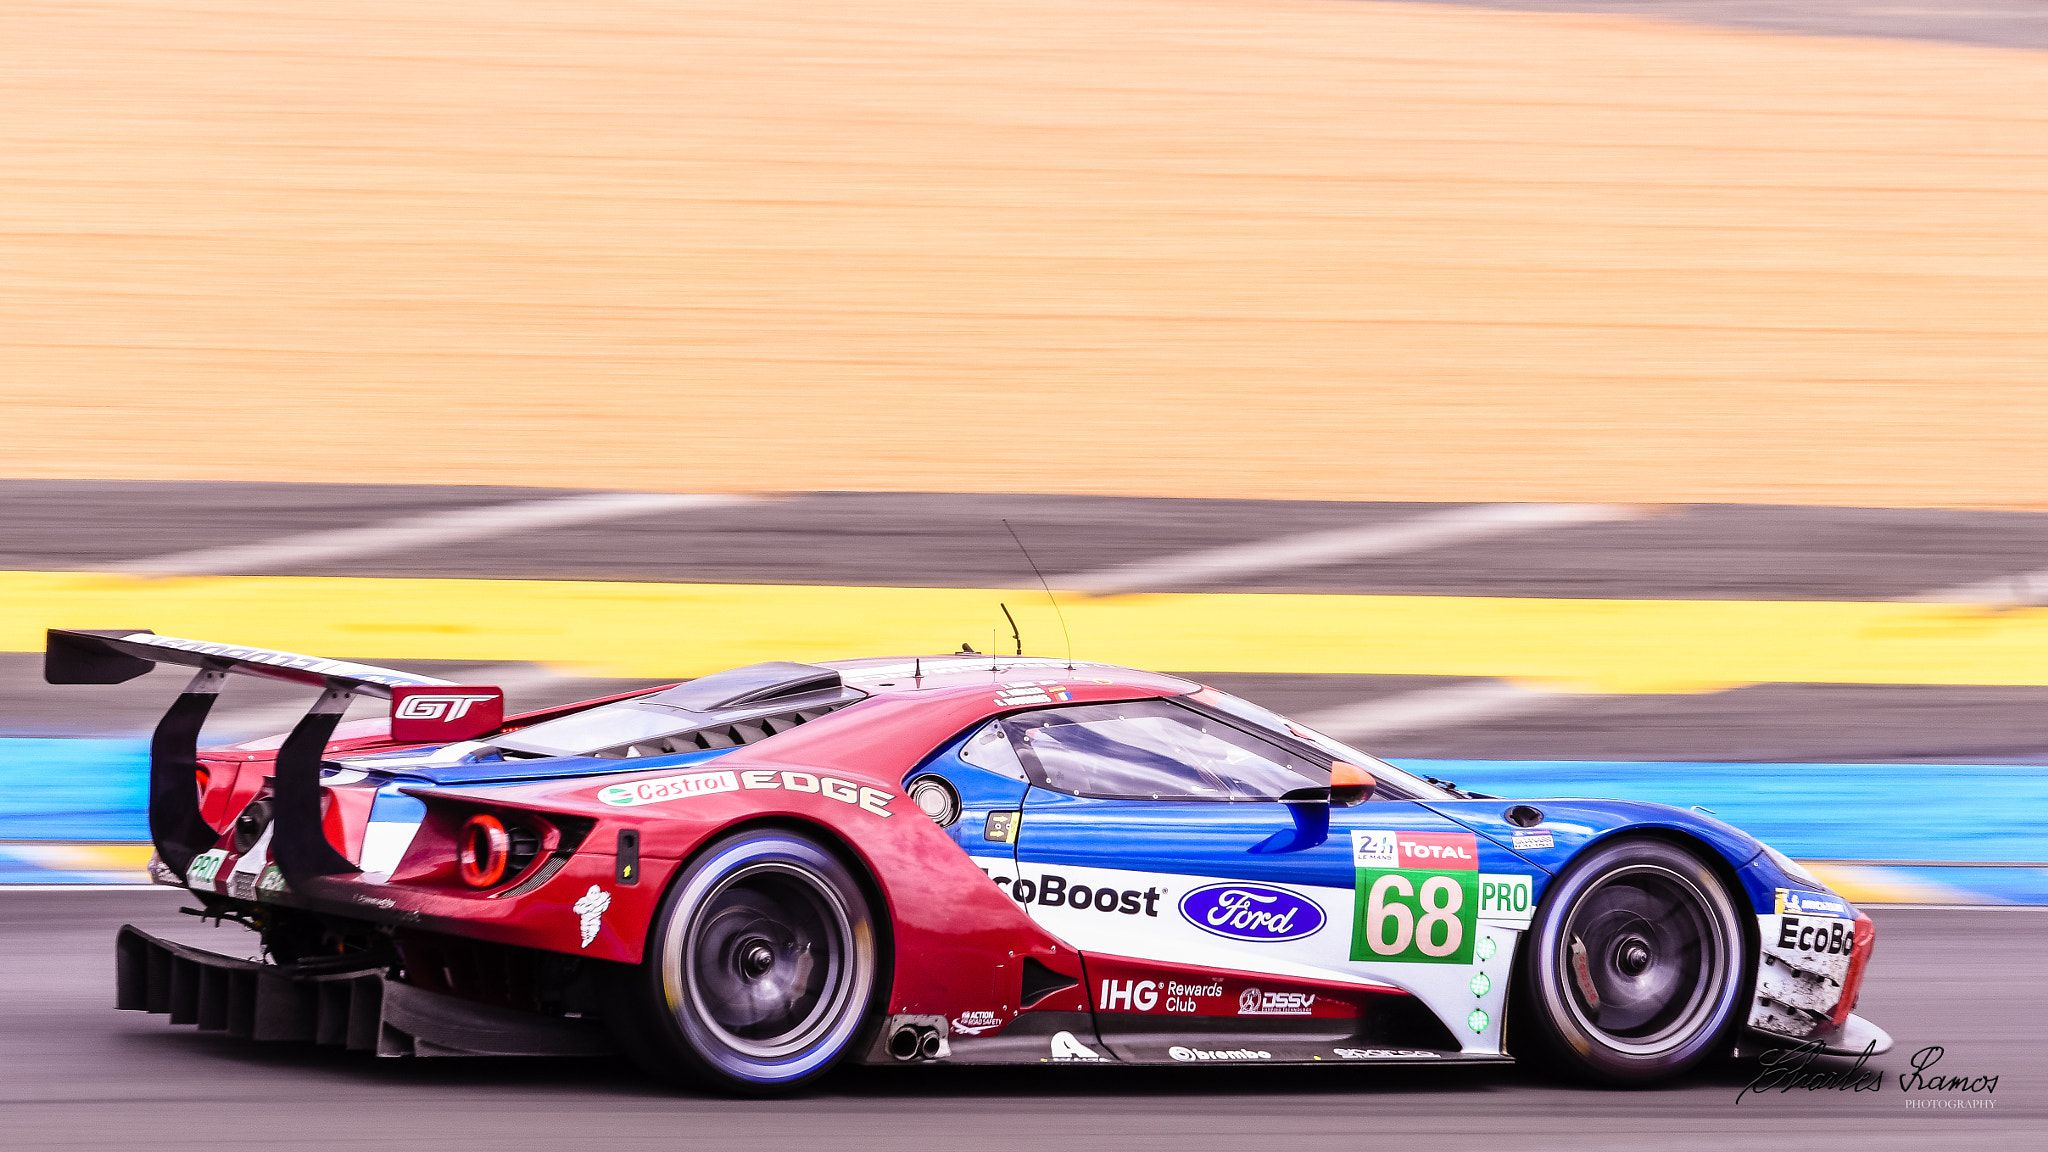 Ford Gt N 68 Ford Chip Ganassi Racing Joey Hand Dirk